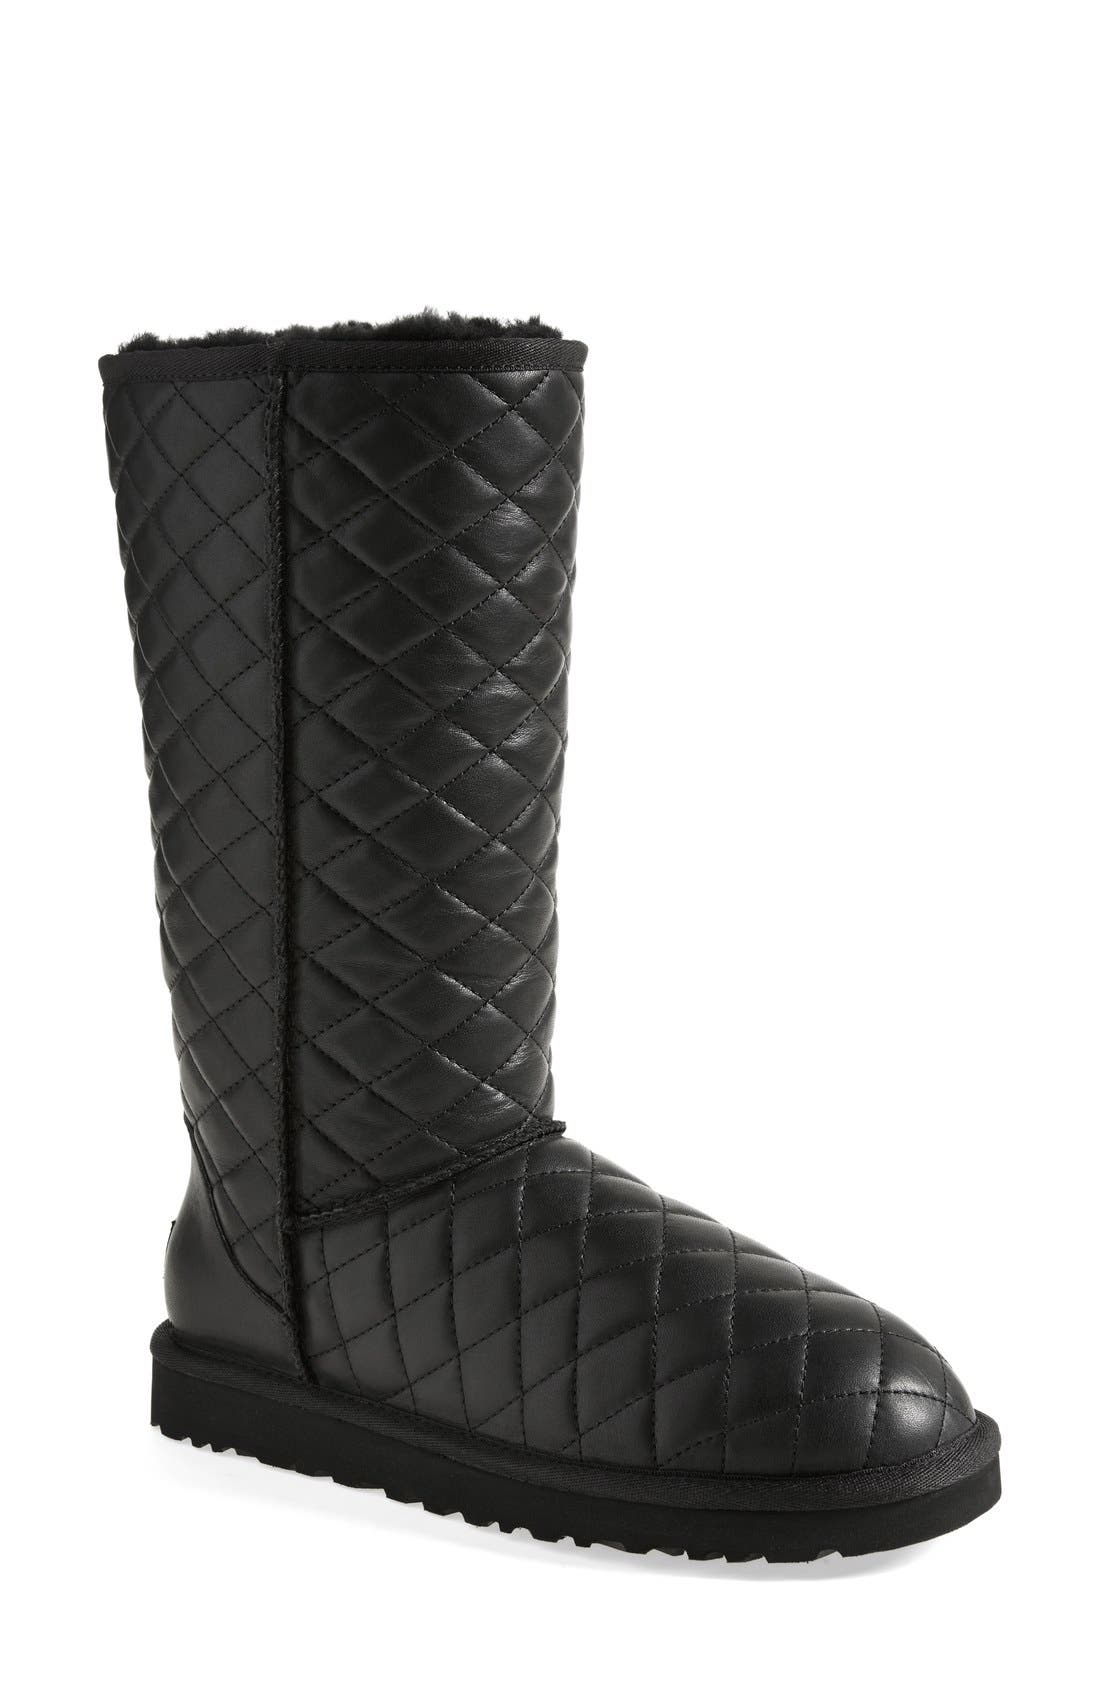 Main Image - UGG® 'Classic - Tall' Diamond Quilted Boot (Women)